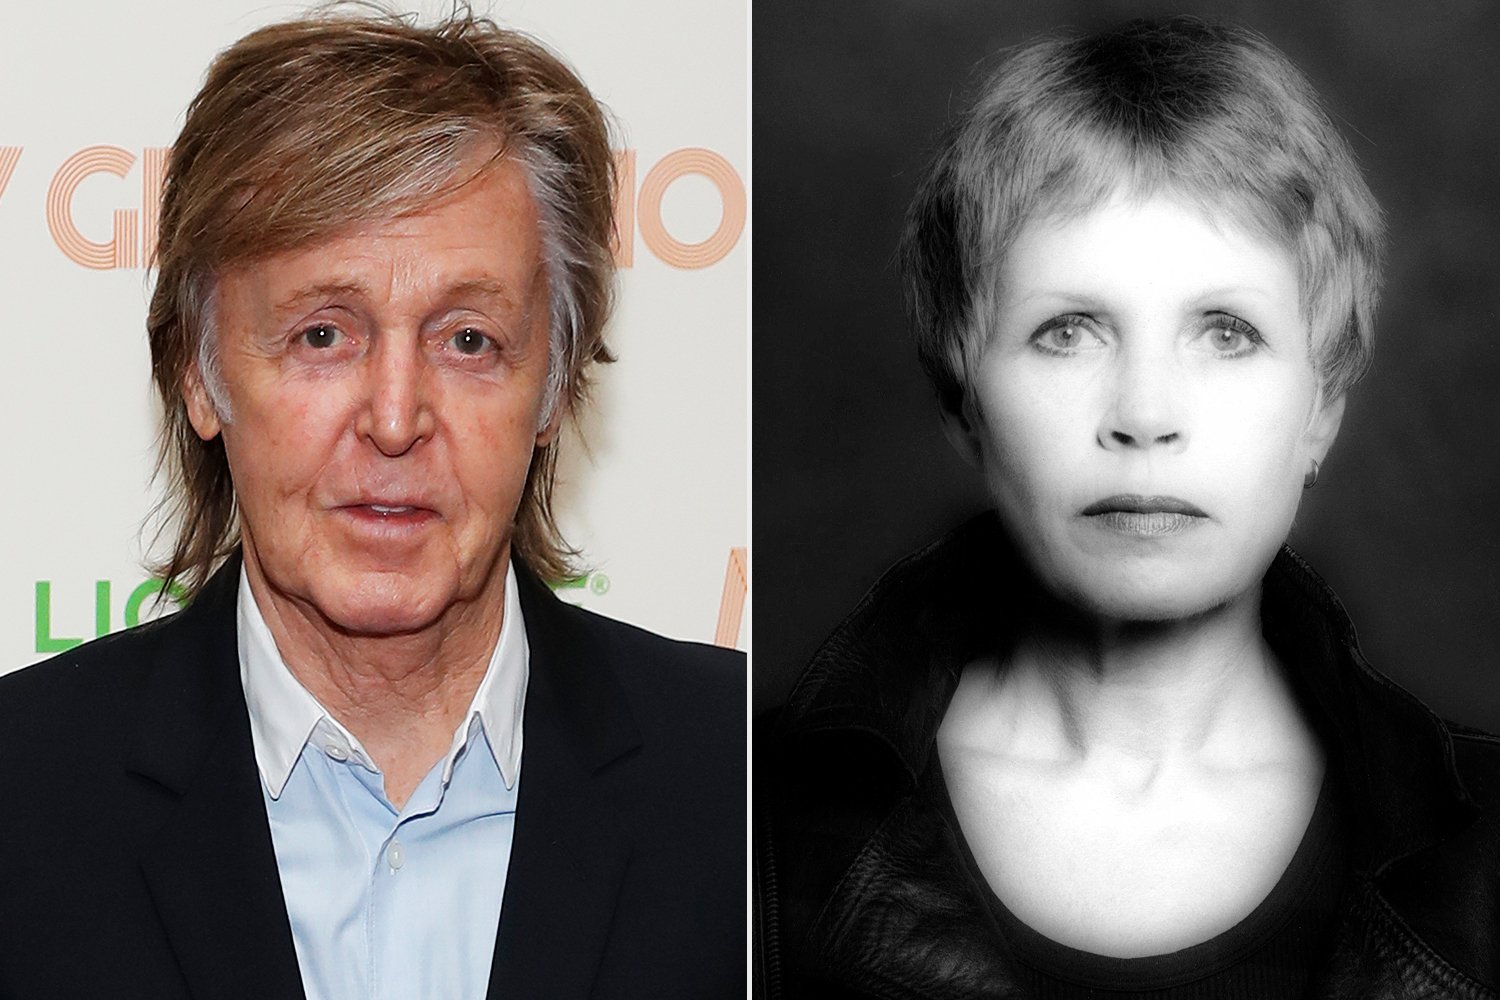 Paul McCartney, Adstrid Kirchherr